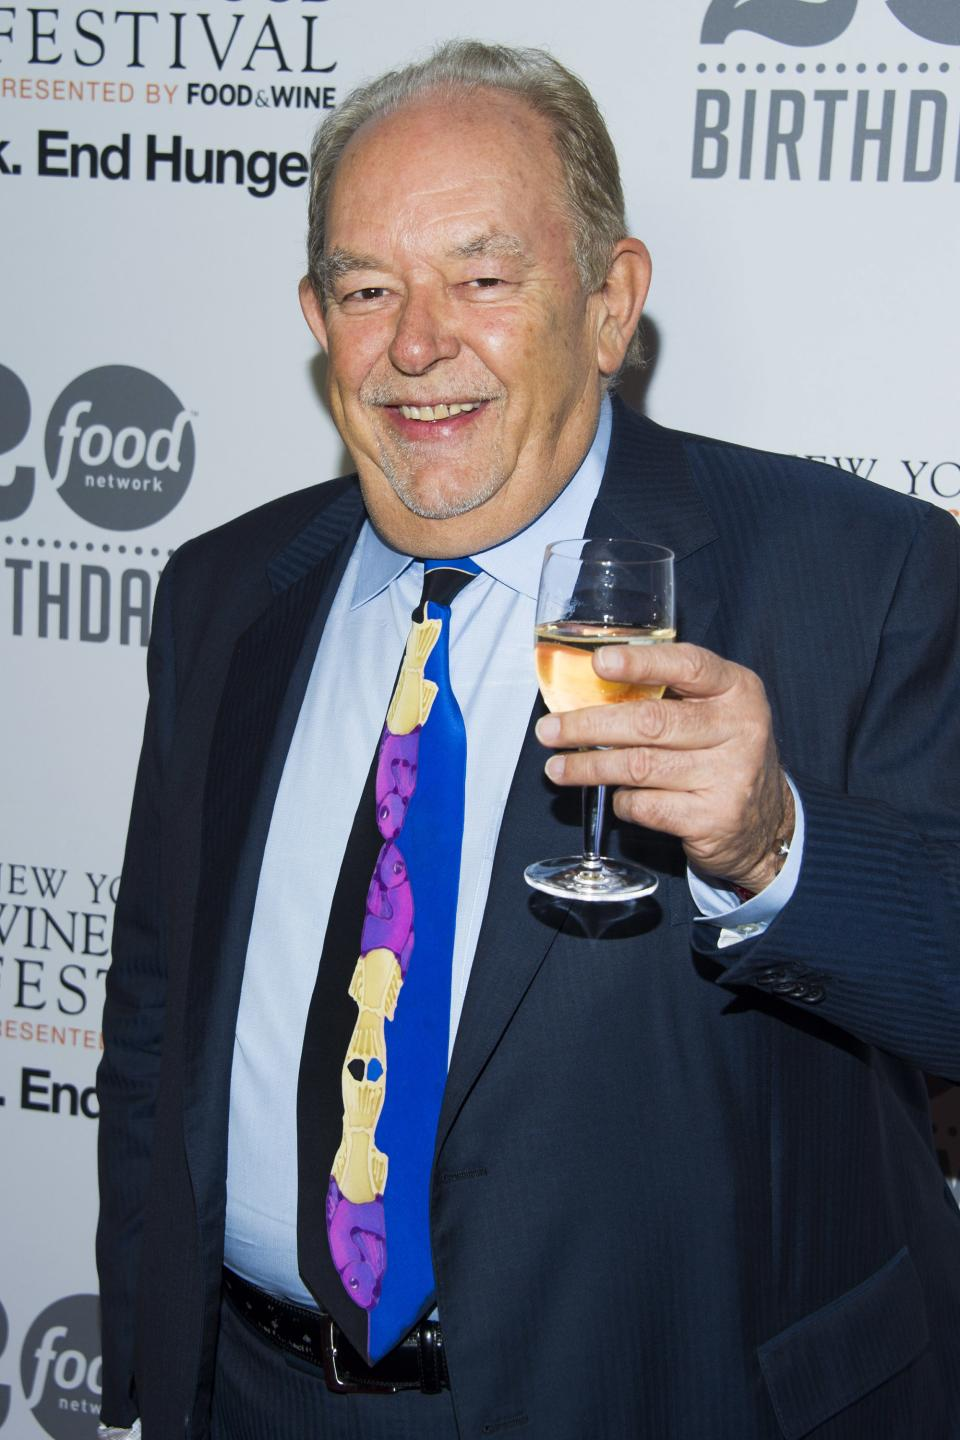 Robin Leach attends the Food Network's 20th birthday party on Thursday, Oct. 17, 2013, in New York. (Photo by Charles Sykes/Invision/AP)